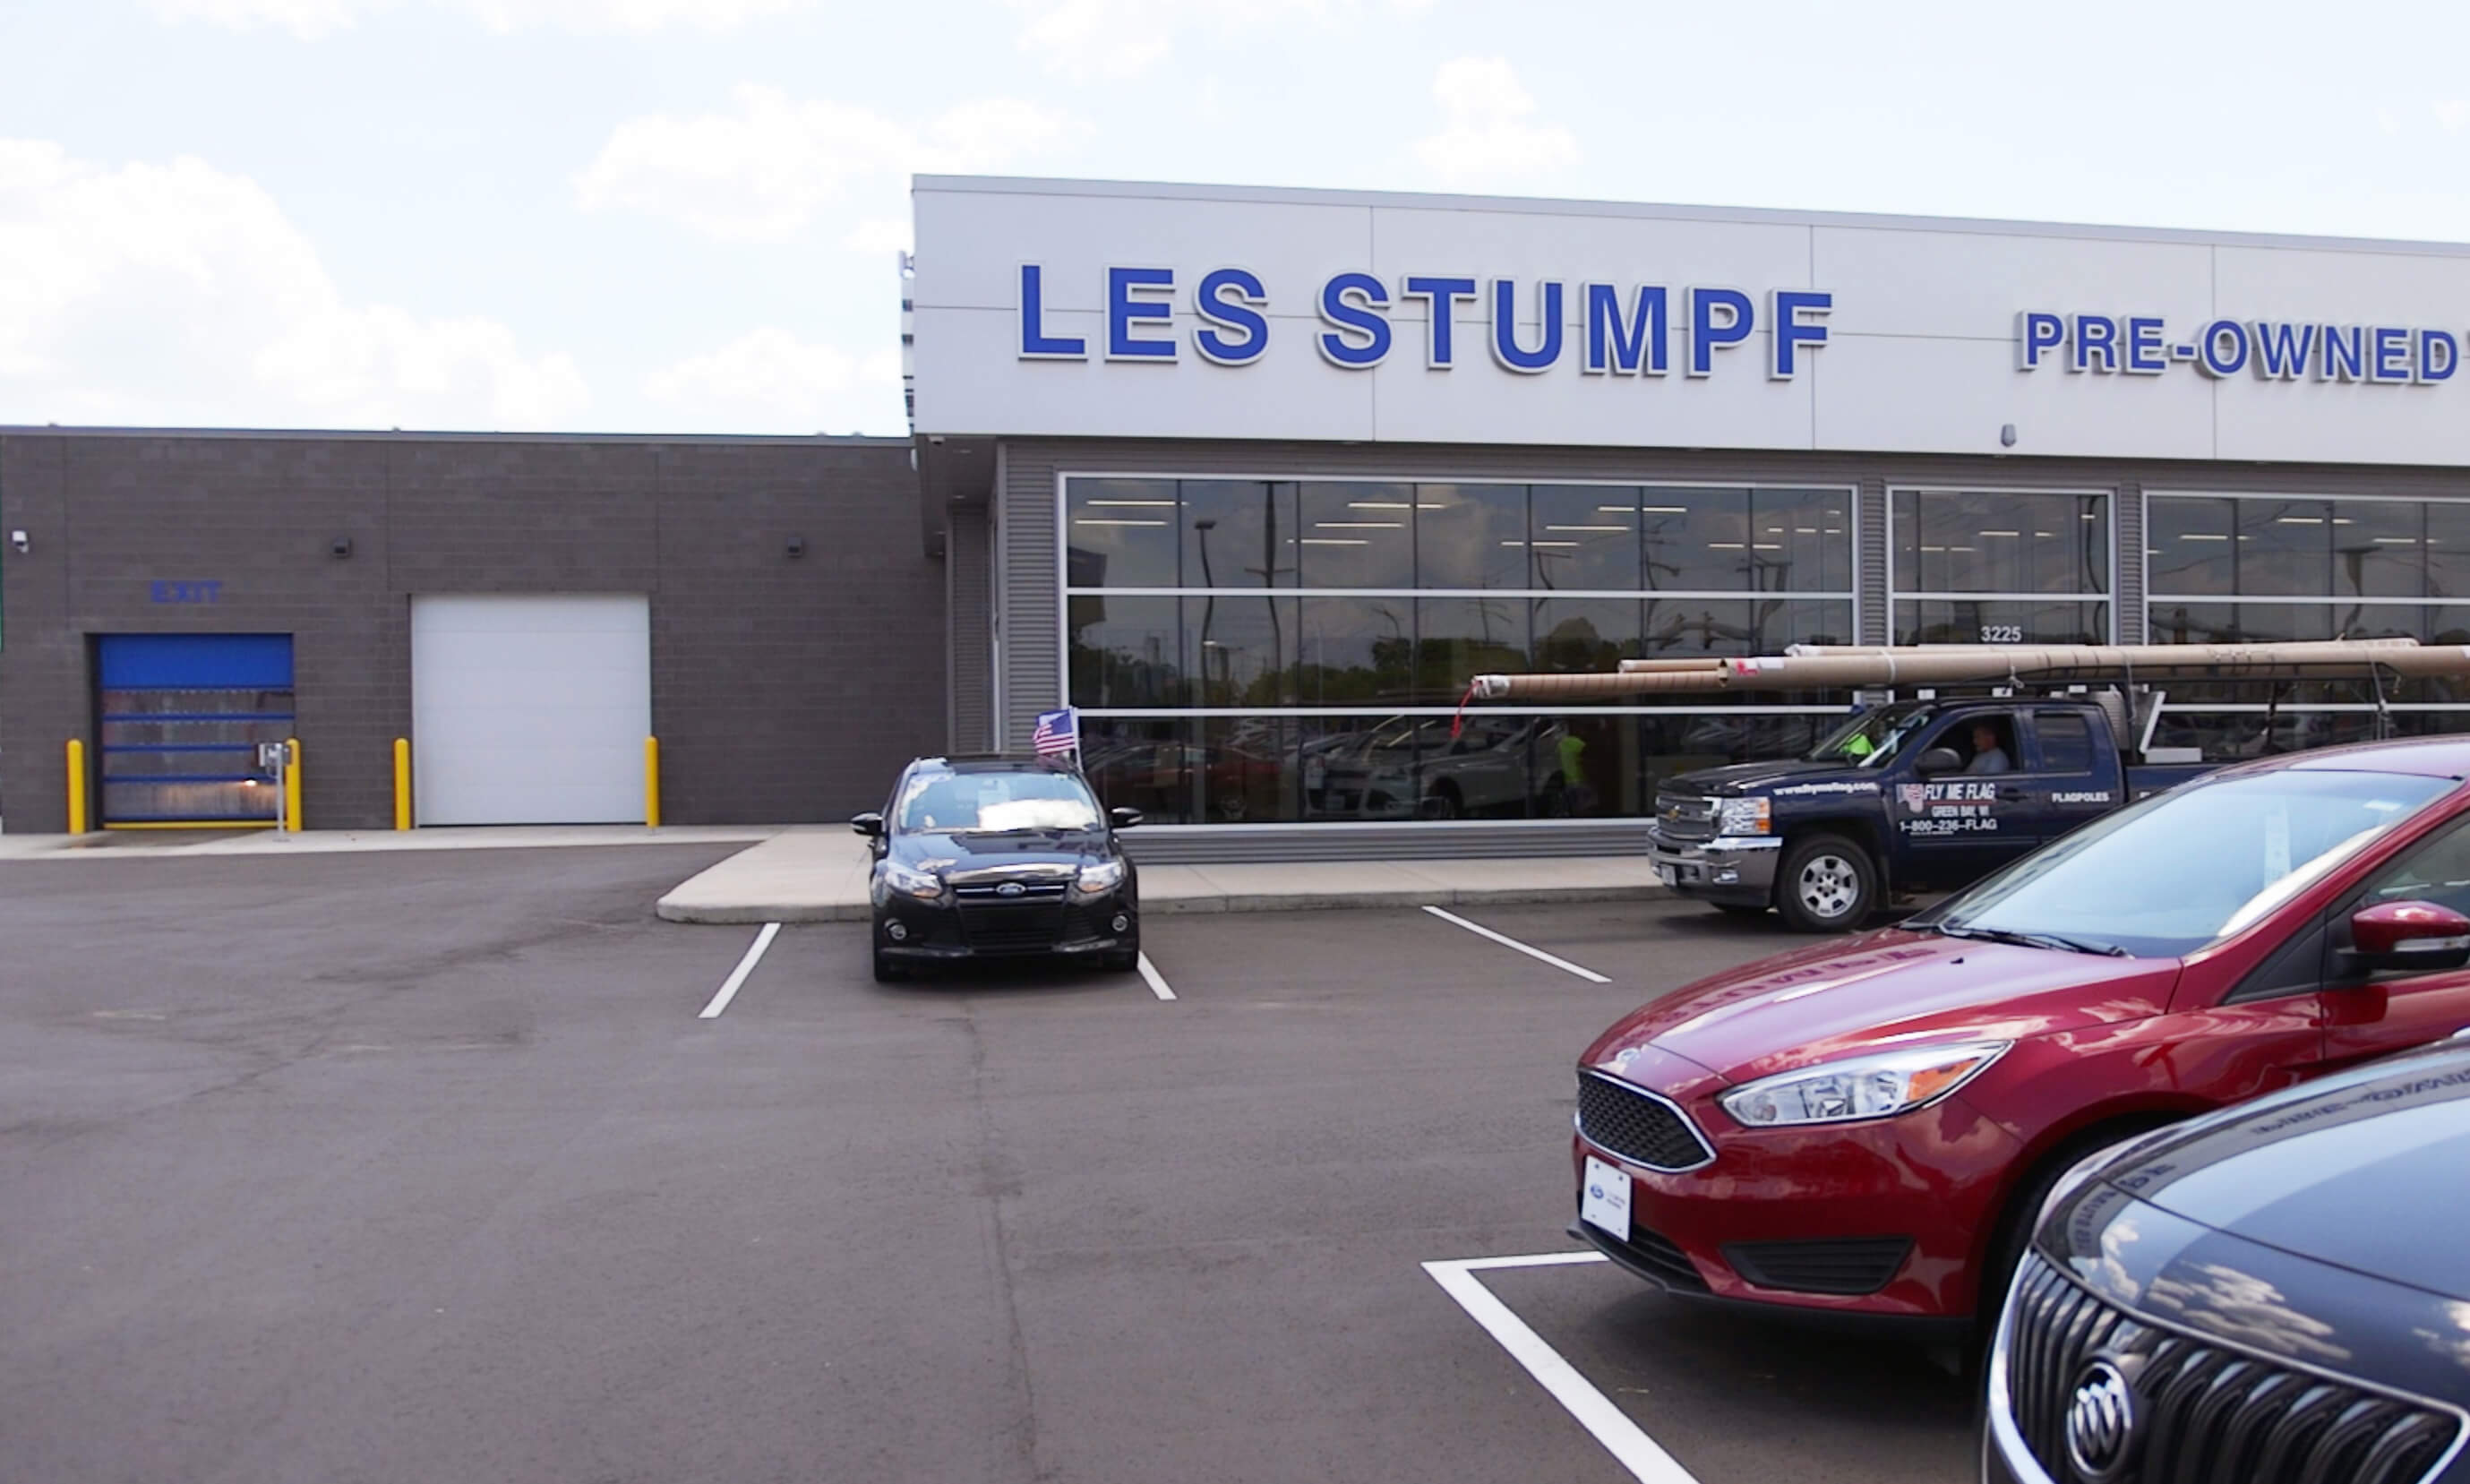 Insultech Meets Style And Performance Requirements At Les Stumpf